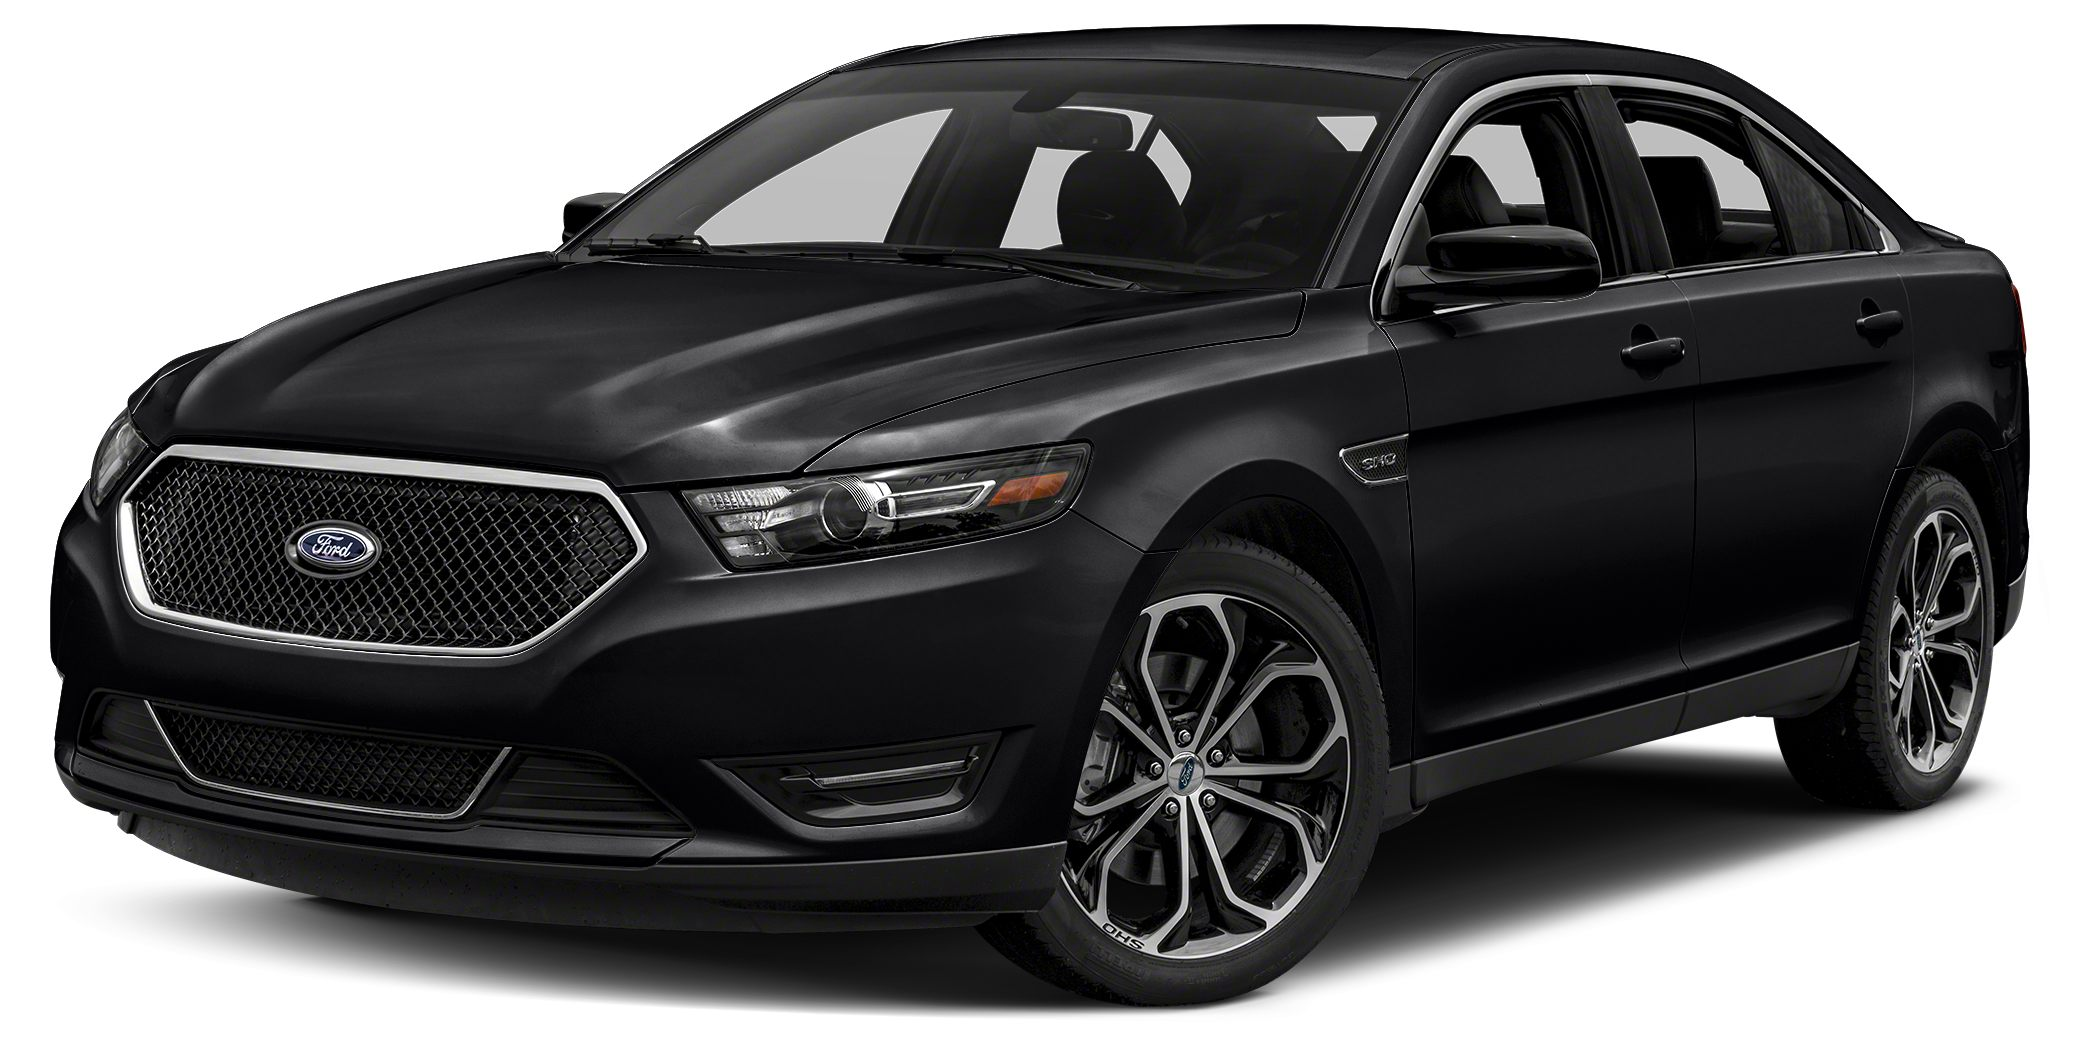 2016 Ford Taurus SHO Here at Lake Keowee Ford our customers come first and our prices will not be